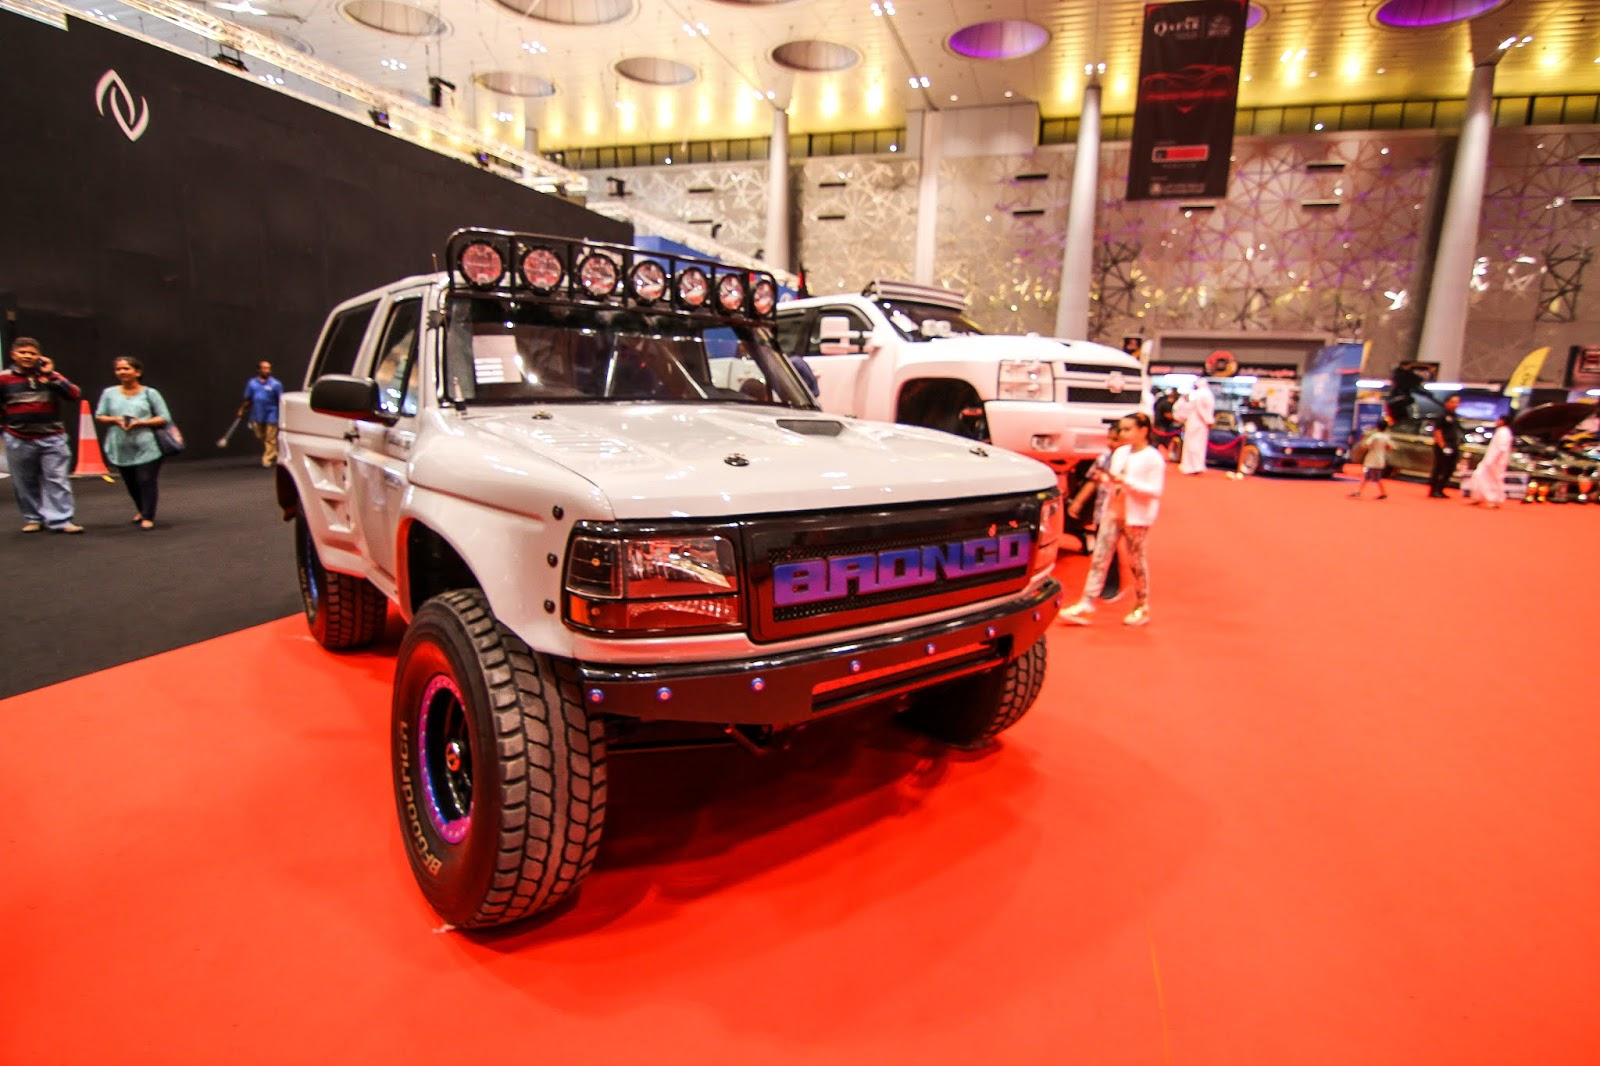 Doing My Frequent Walk Around Al Anabi Performance I Spotted This  Ford Bronco Probably Was Just Sitting Here After A Long Route To Qatar